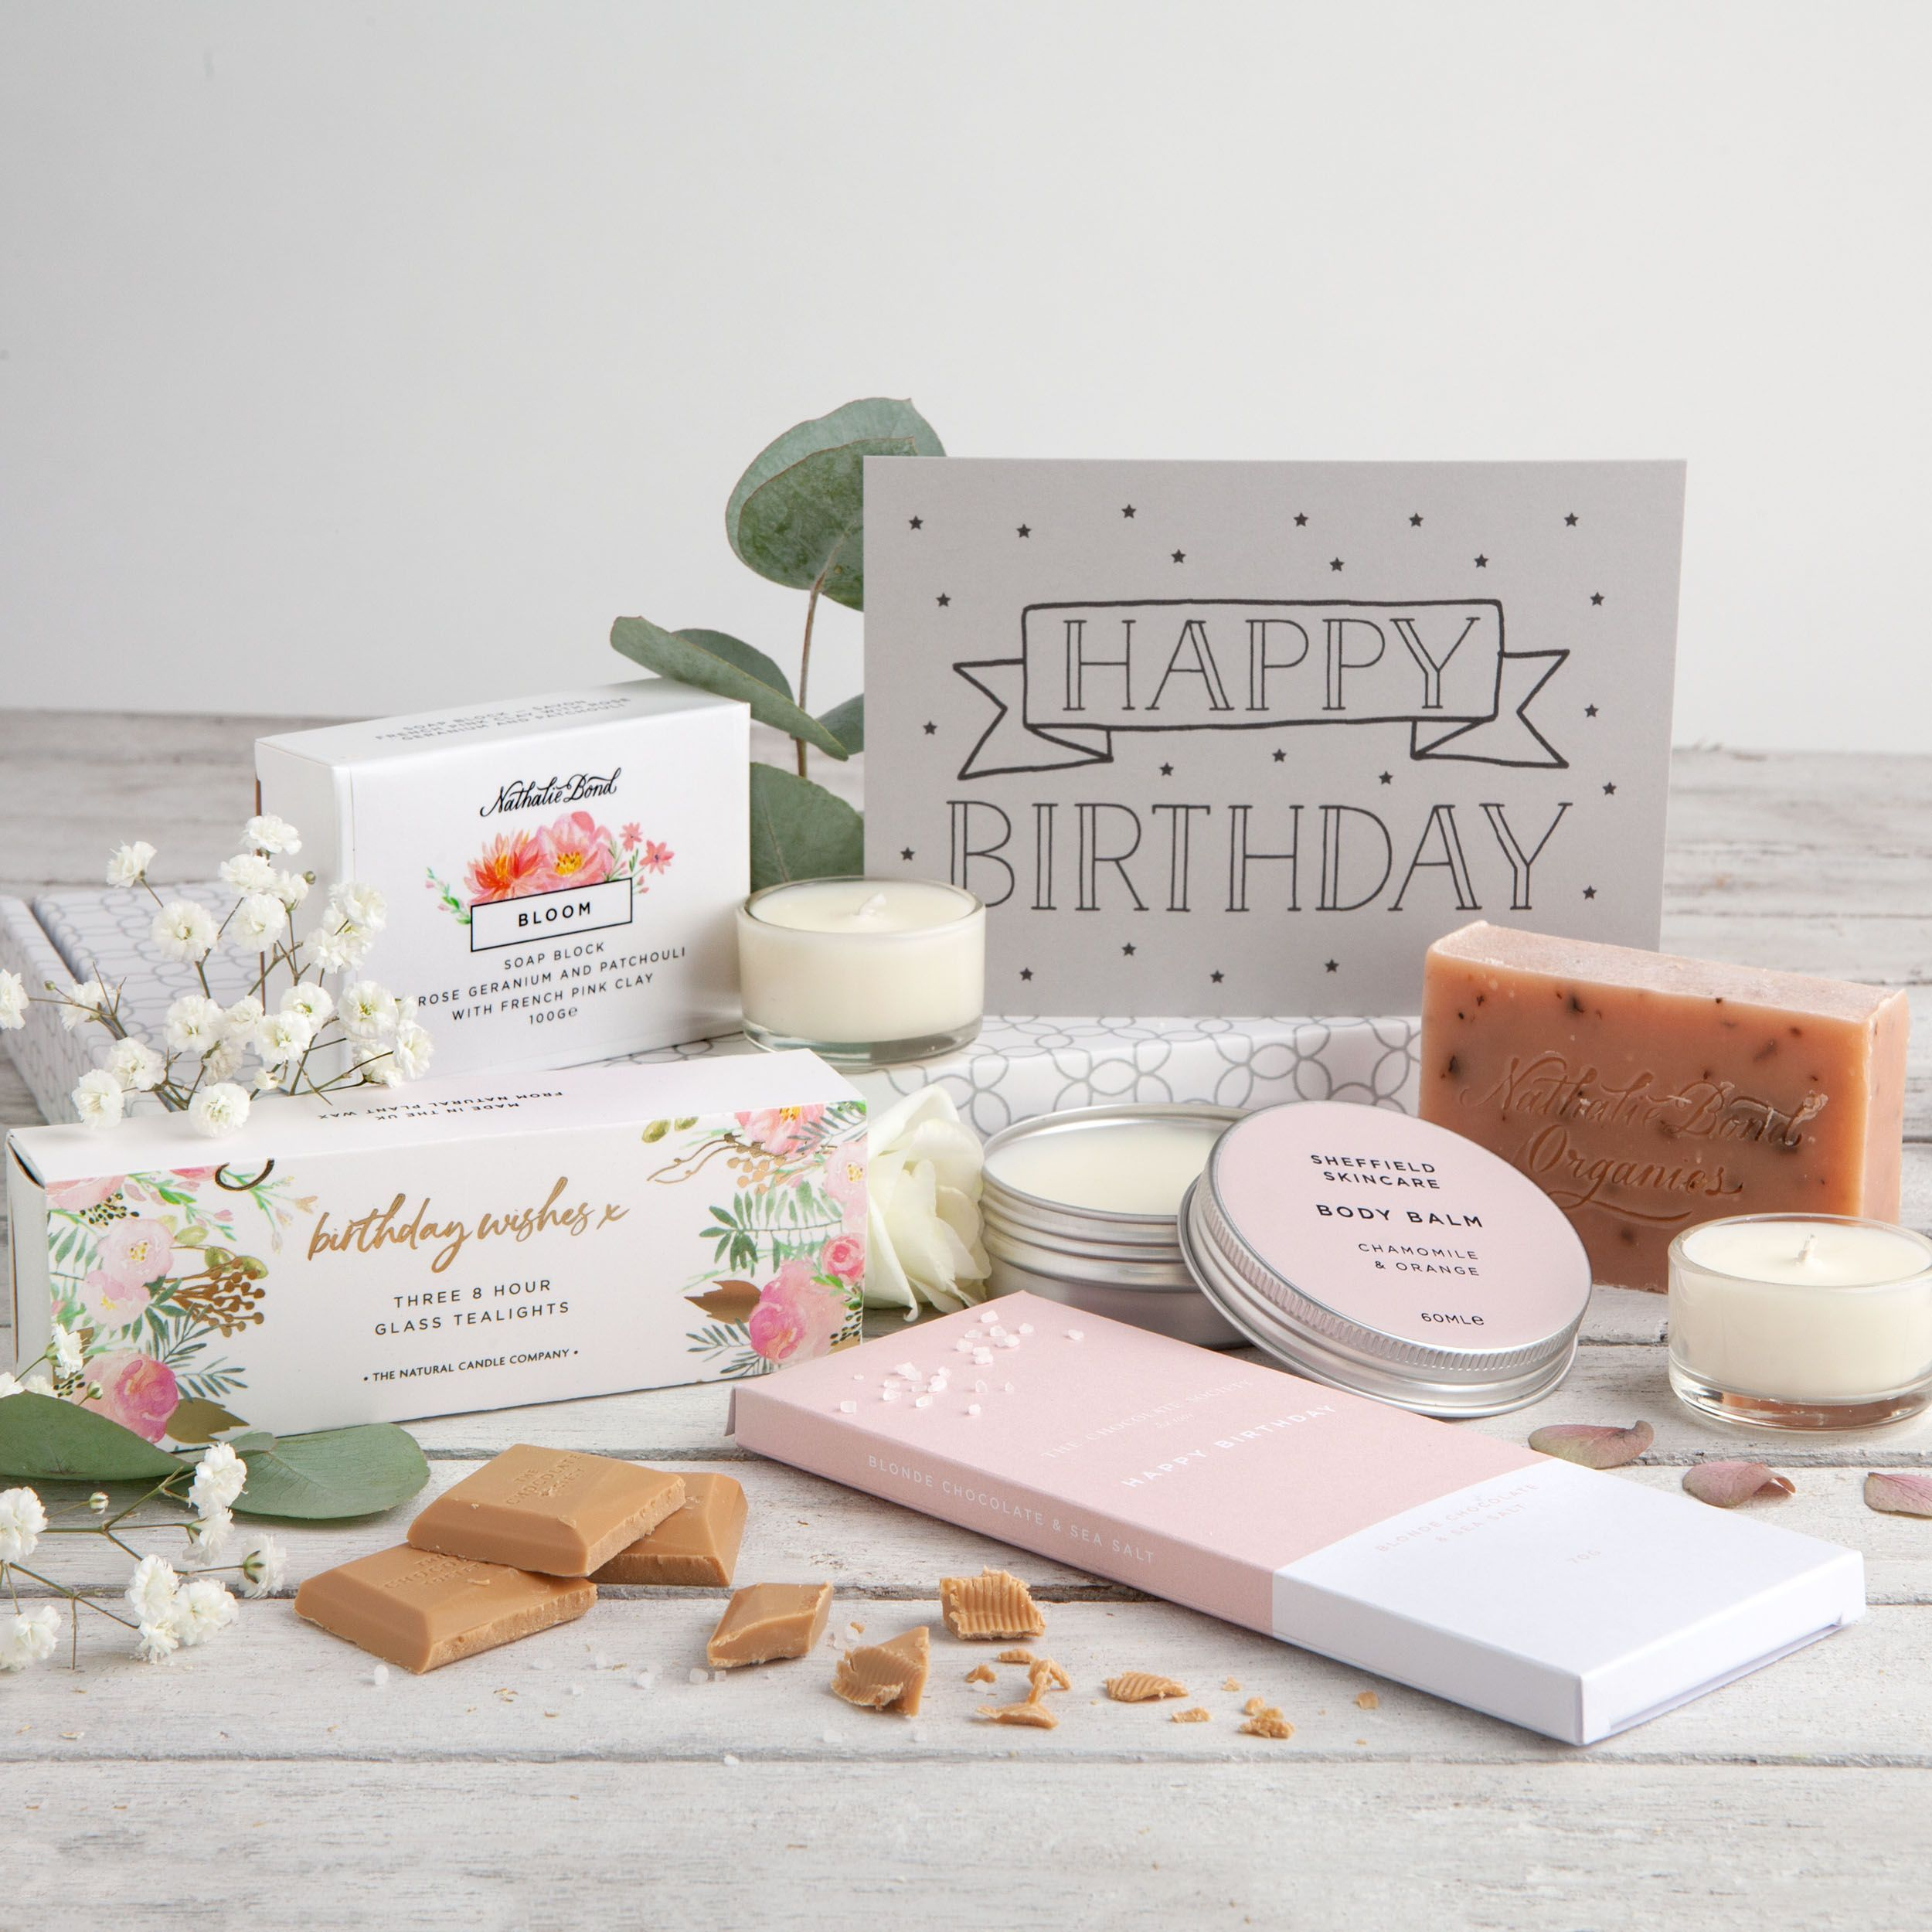 Letterbox Gifts Are A Unique Selection Of Hand Picked British Gift Sets Delivered Straight Through The Door